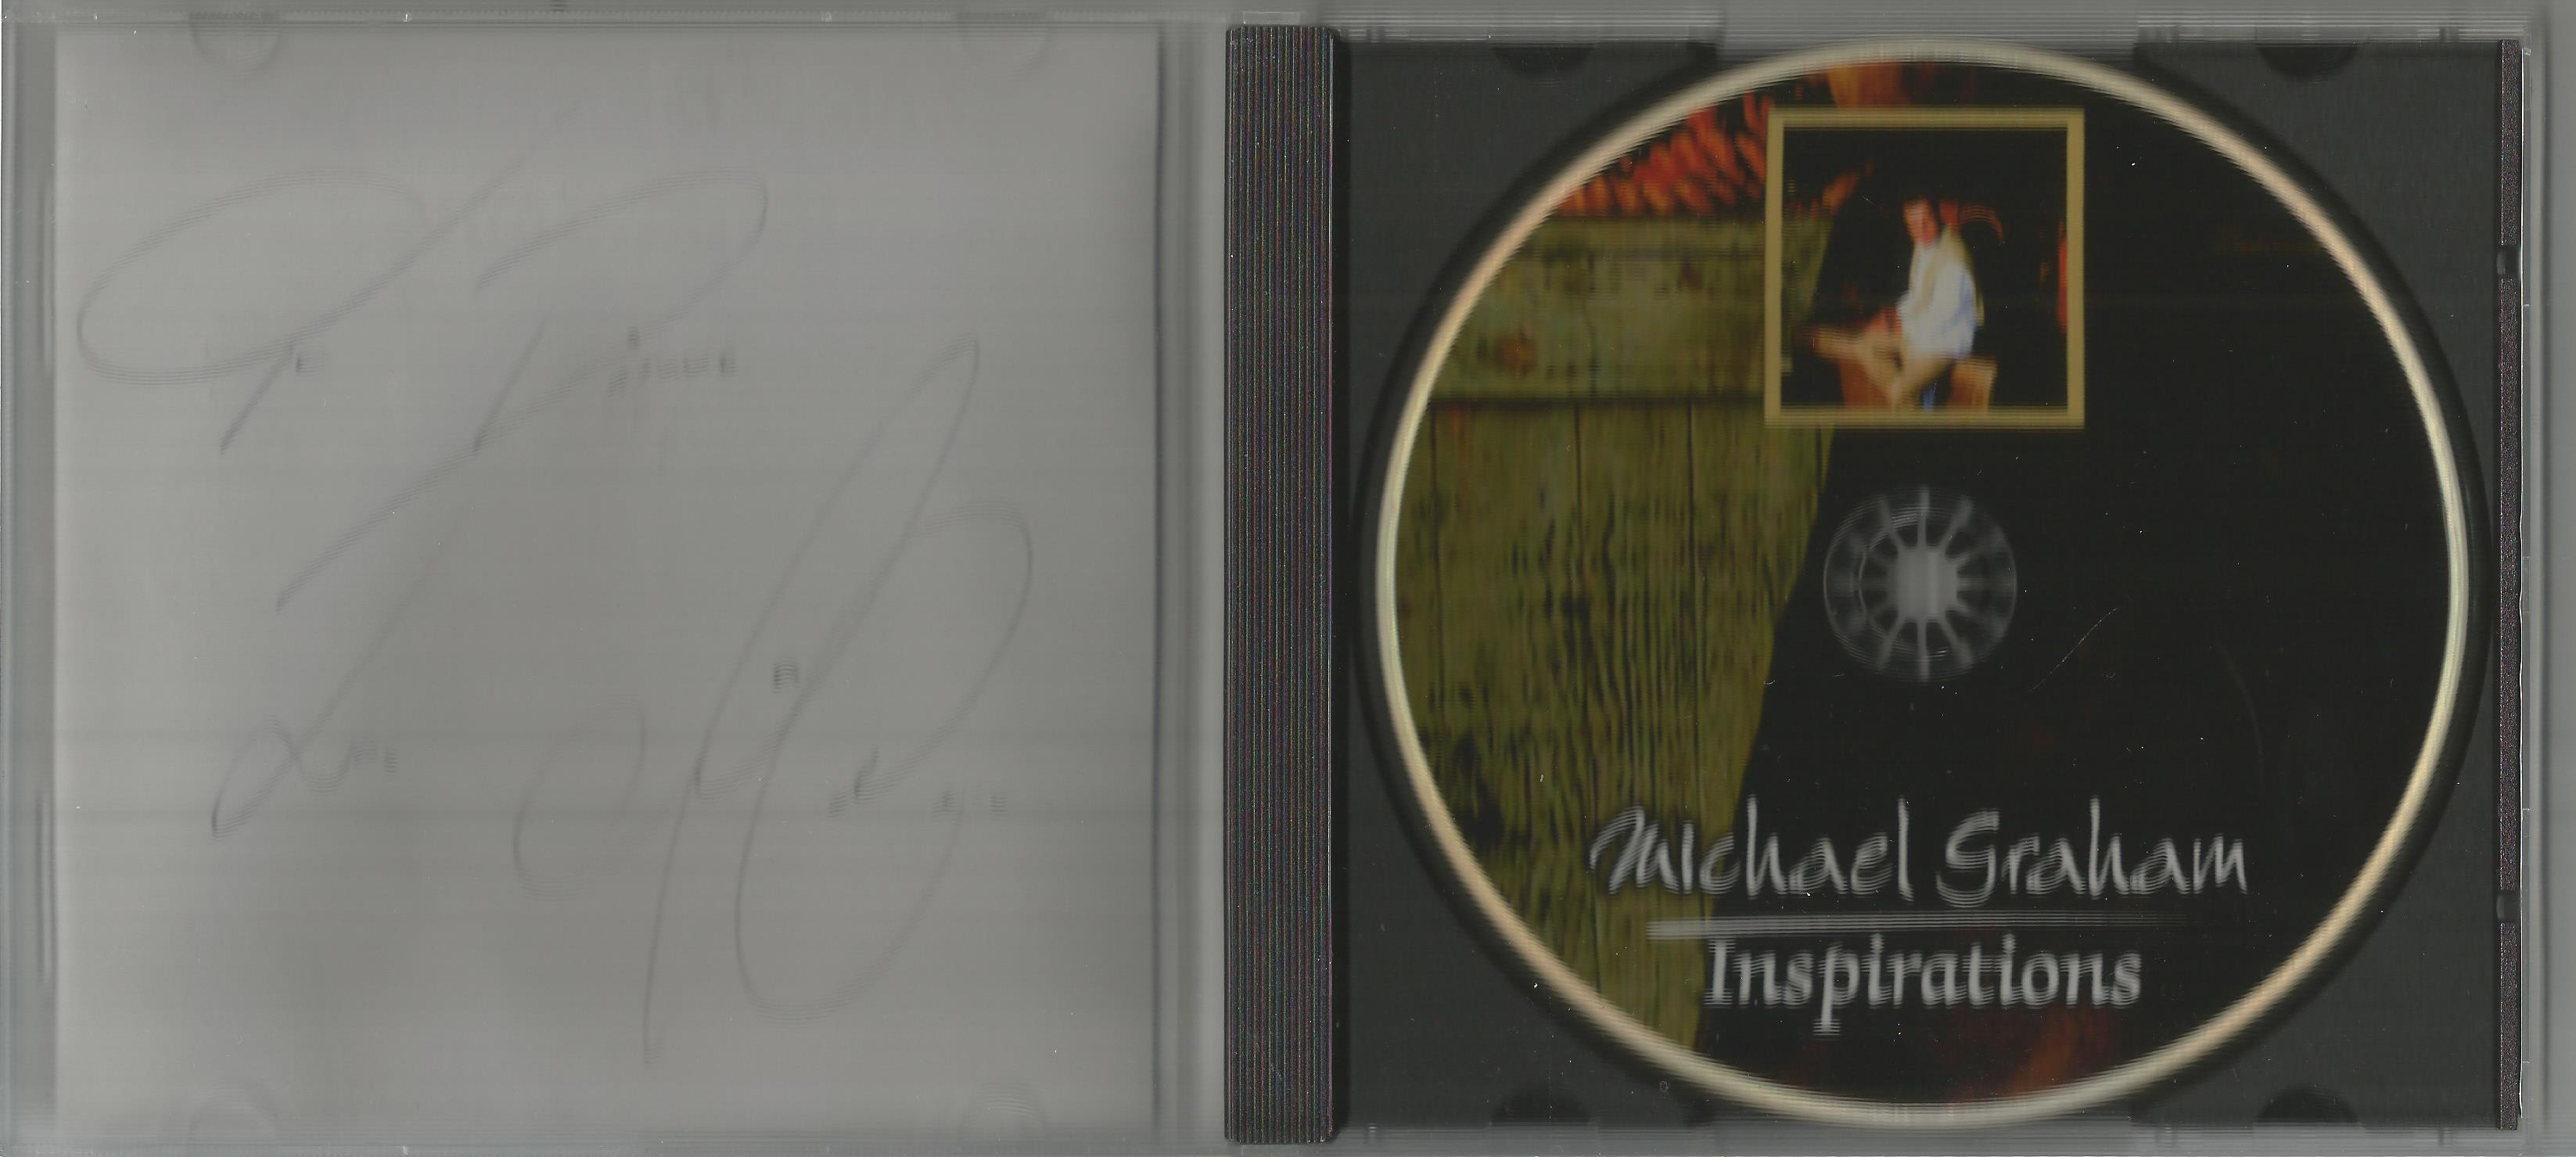 6 Signed CDs Including Michael Graham (Inspirations) Disc Included, Hazel O'Connor (The Bluja - Image 6 of 6